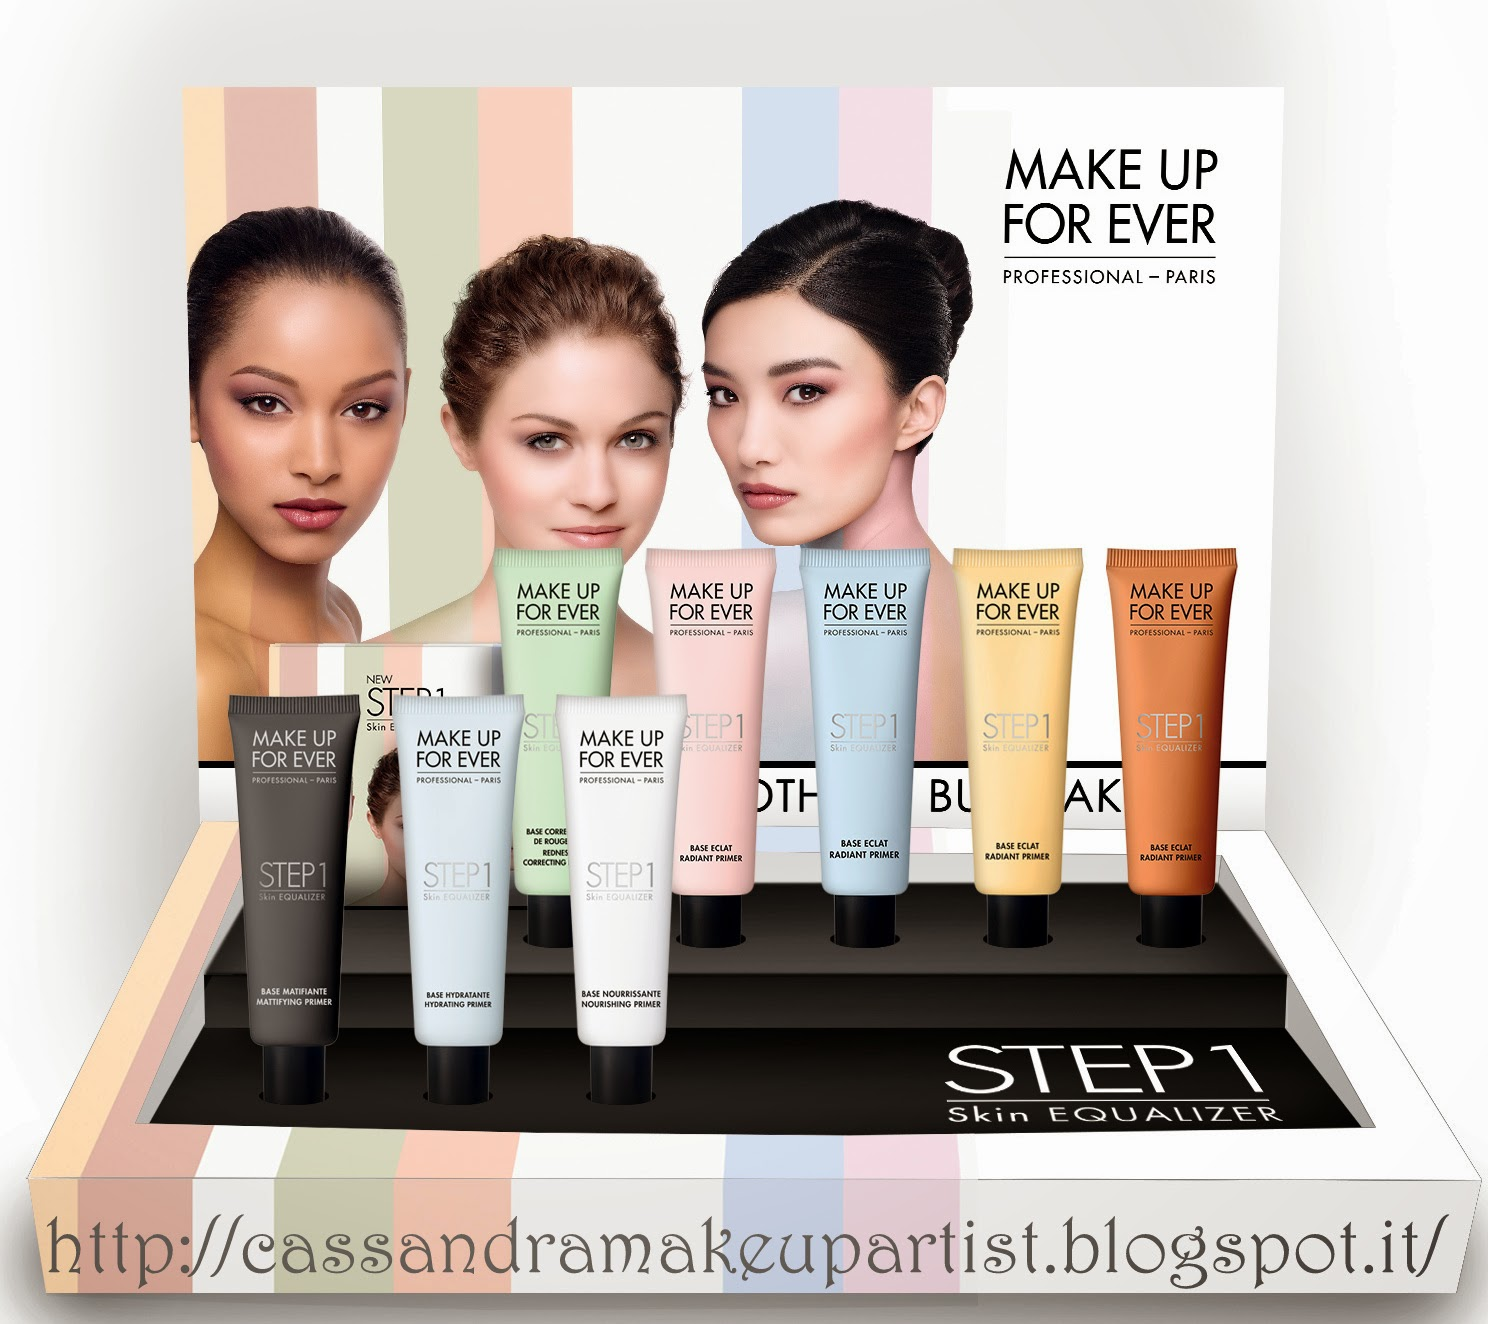 MAKE UP FOR EVER - STEP1 Skin Equalizer - nuove basi - nuovi vew primer - la truccheria - mufe